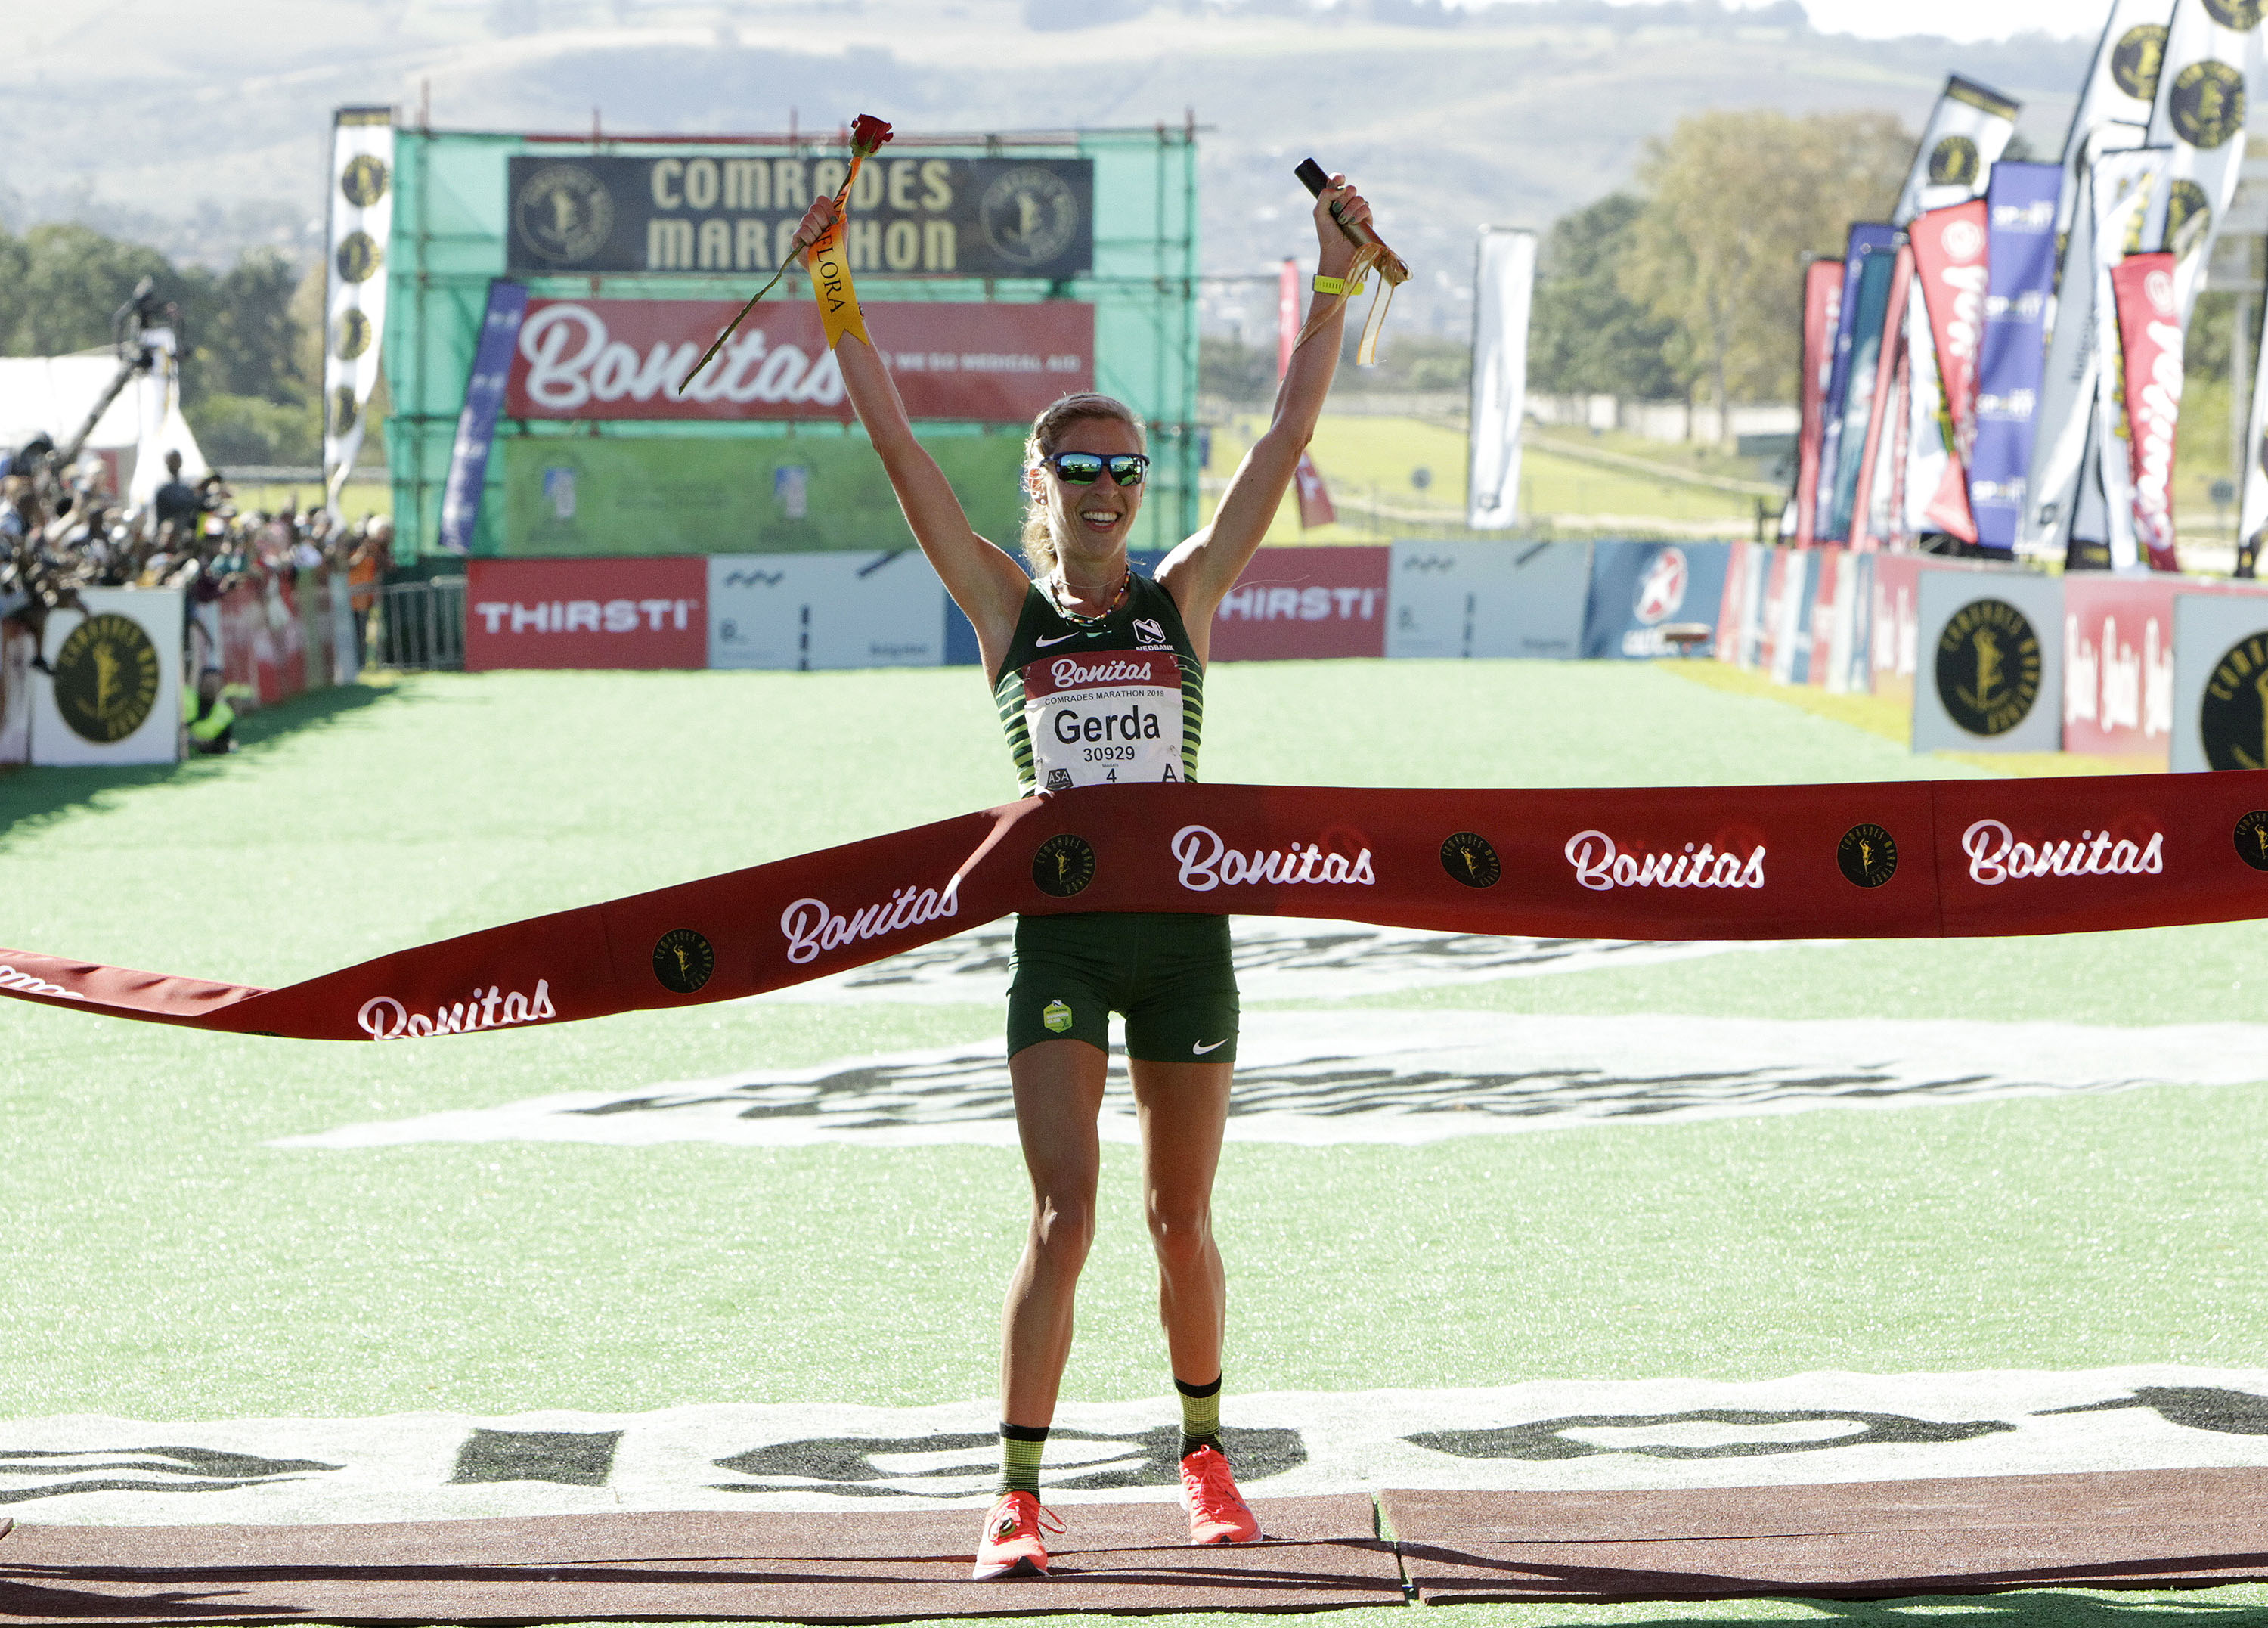 Gerda Steyn winner of the 94th Comrades Marathon on June 09, 2019 in Durban, South Africa. Steyn made a time of 5:58:53.